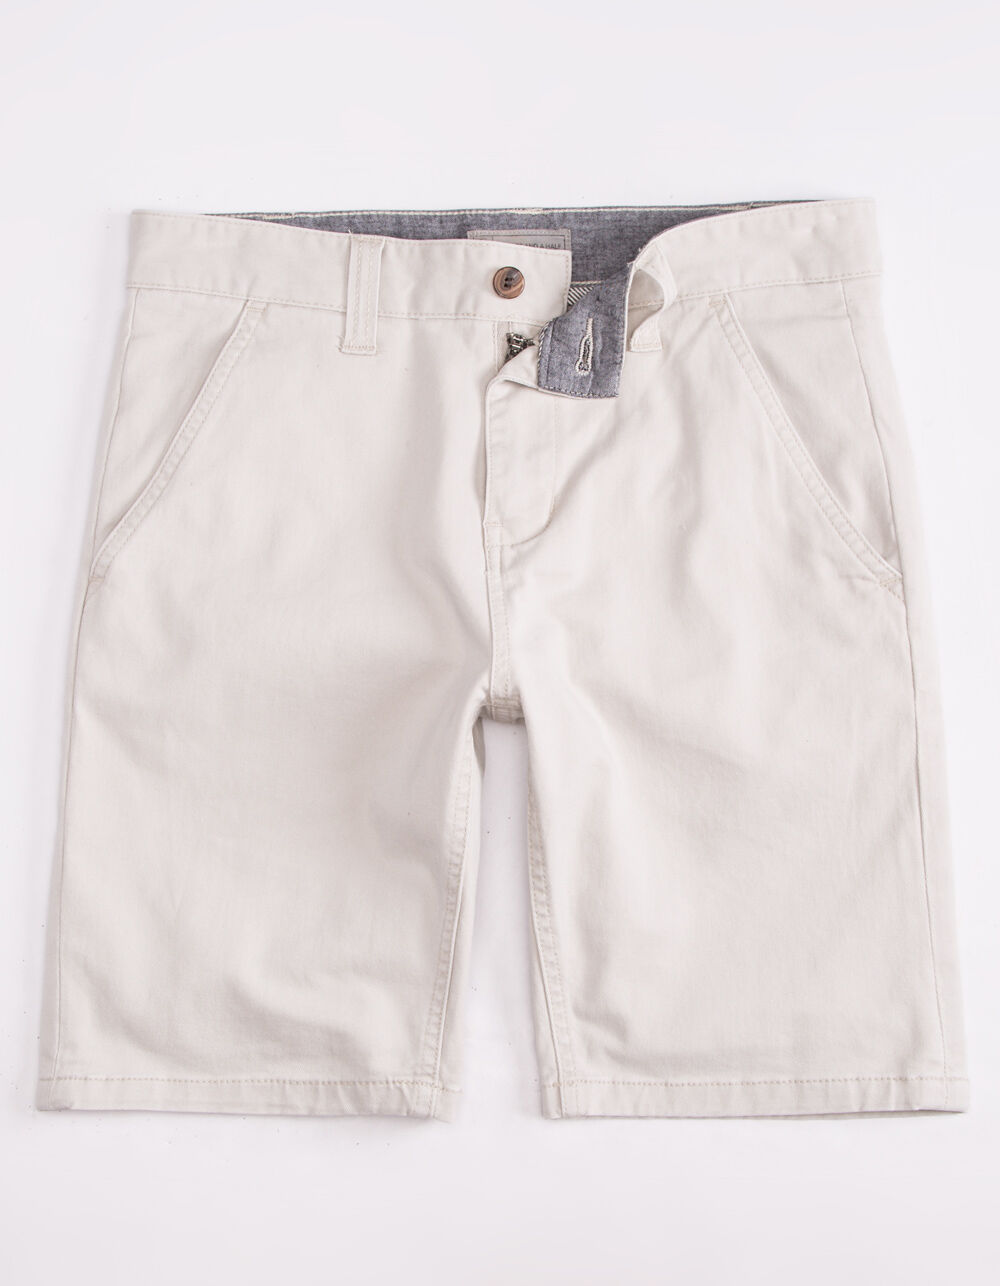 CHARLES AND A HALF Lincoln Stretch Stone Shorts